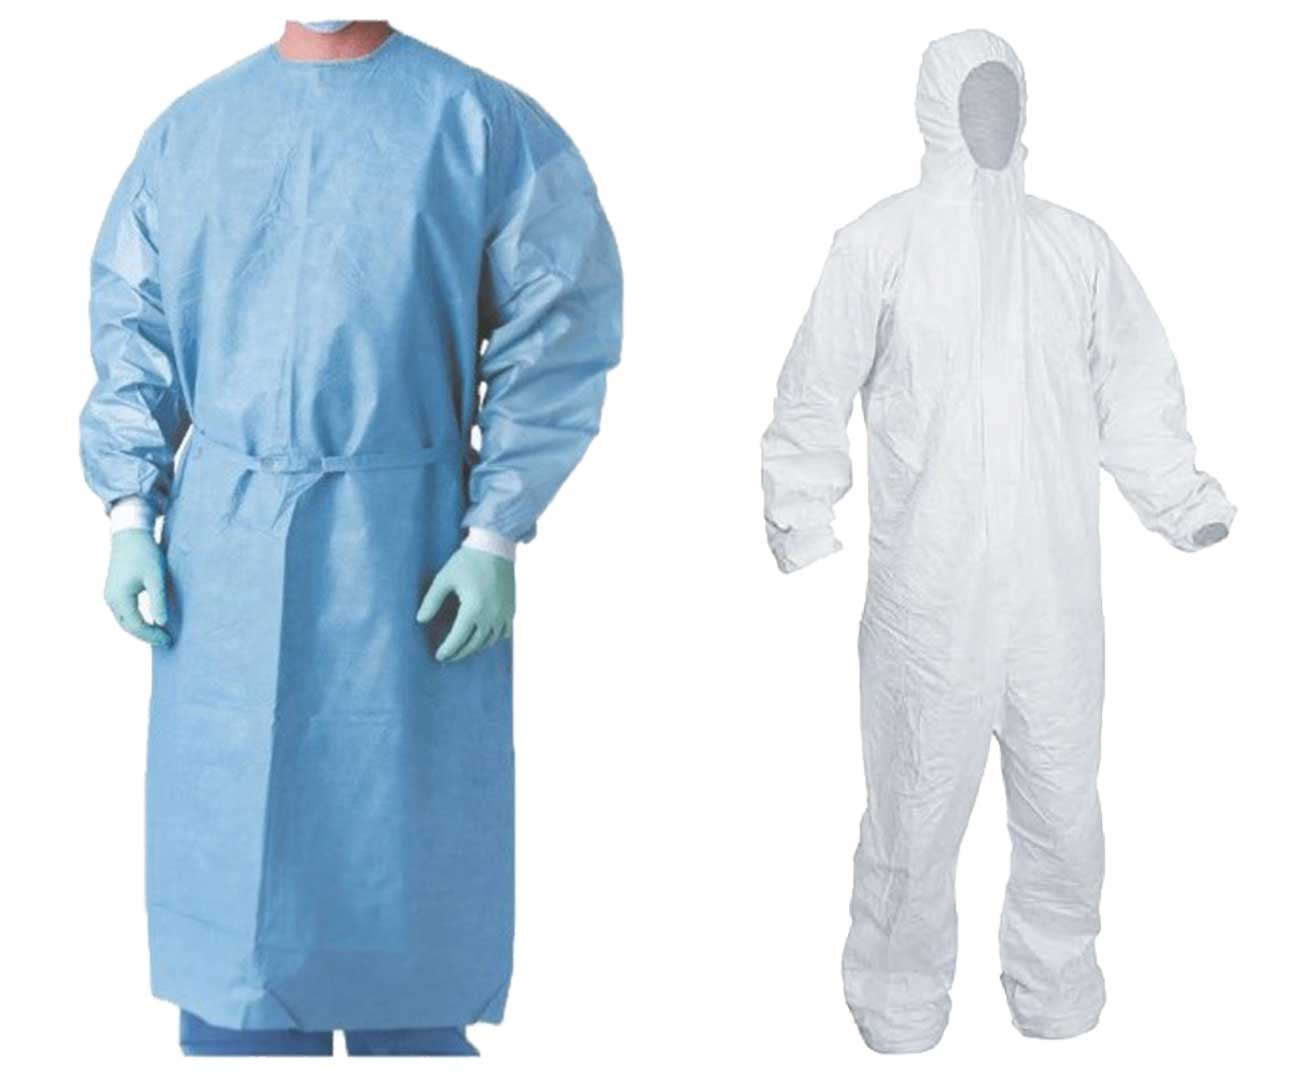 PPE For Body